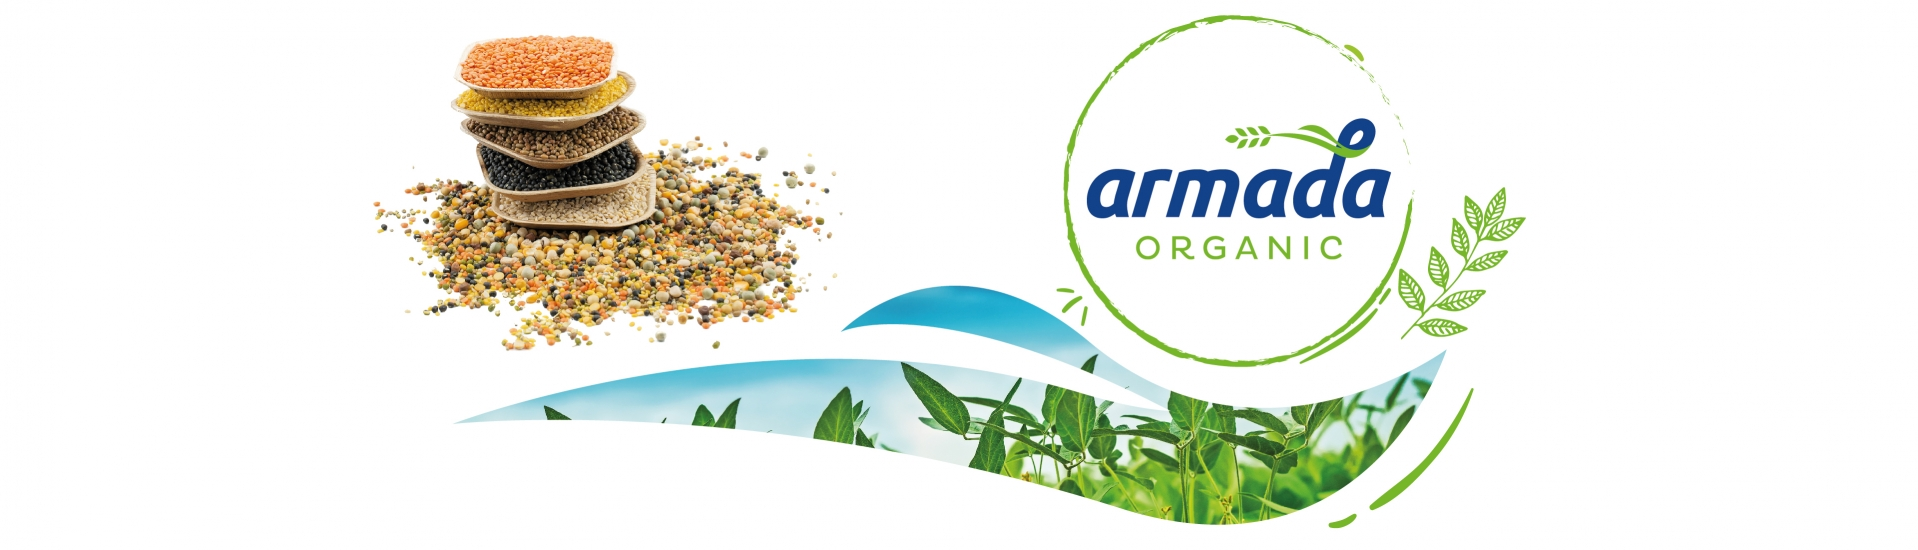 Accordance with international organic agriculture regulations